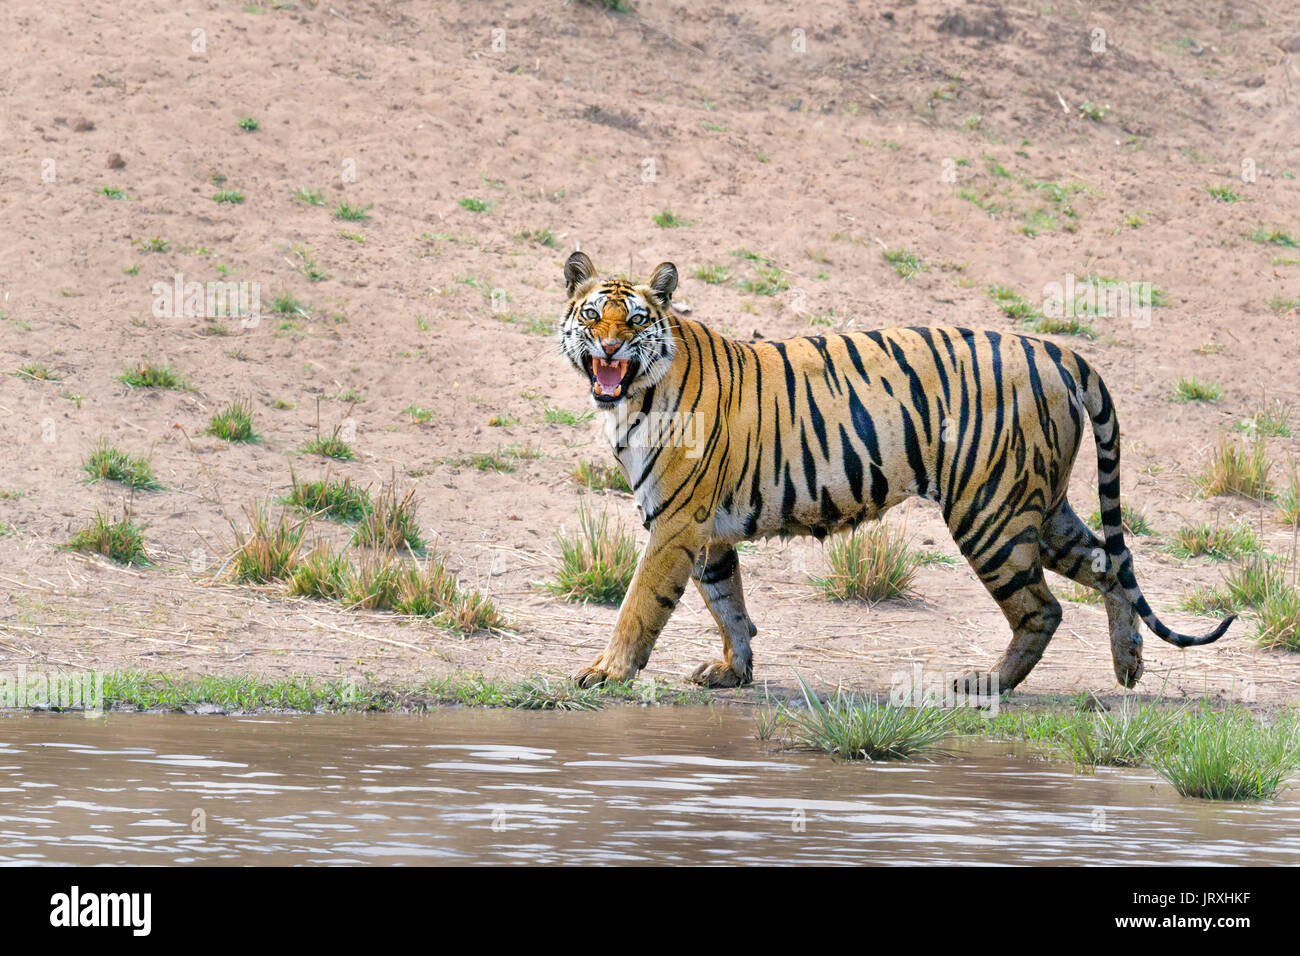 Royal Bengal Tiger or Panthera Tigris or Indian Tiger doing Flhemen response at Bandhavgarh National Park,Madhyapradesh India. - Stock Image